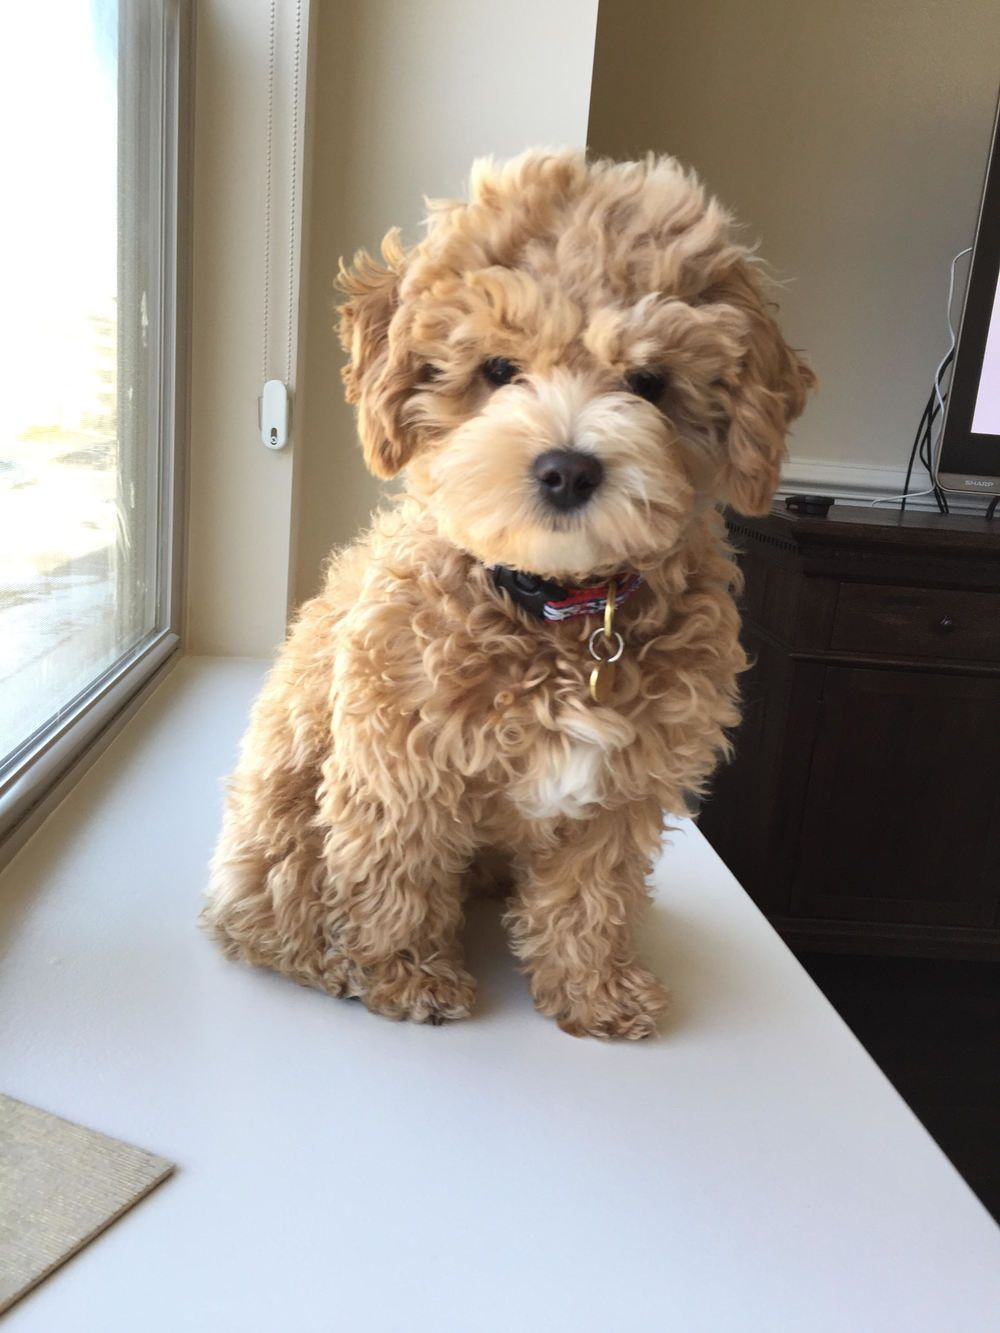 How Much Does A Cavapoo Puppy Cost